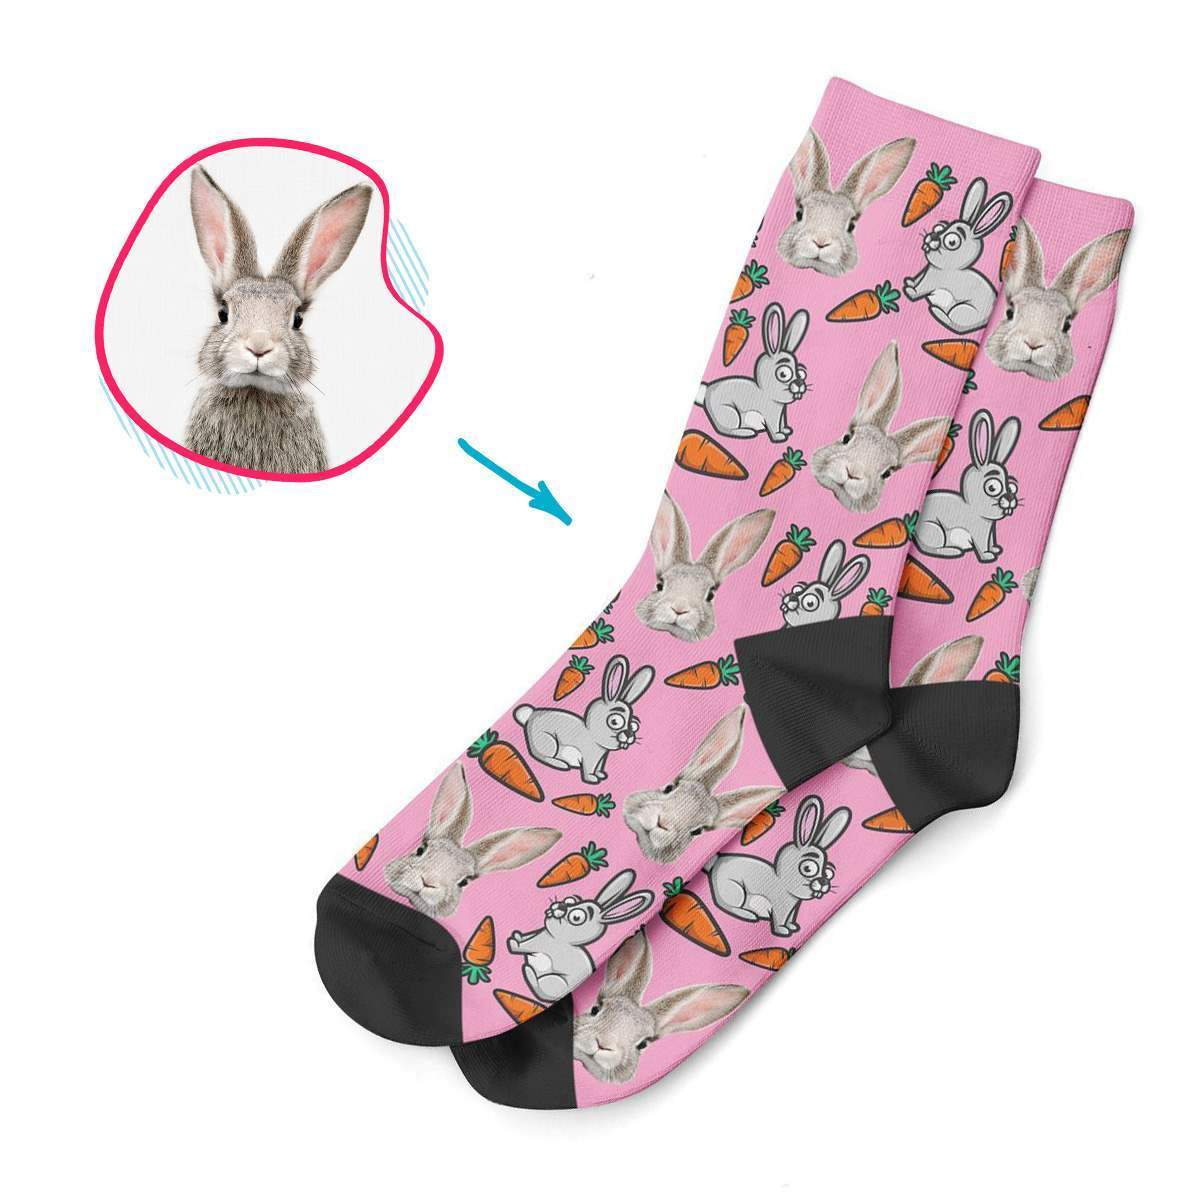 pink Bunny socks personalized with photo of face printed on them